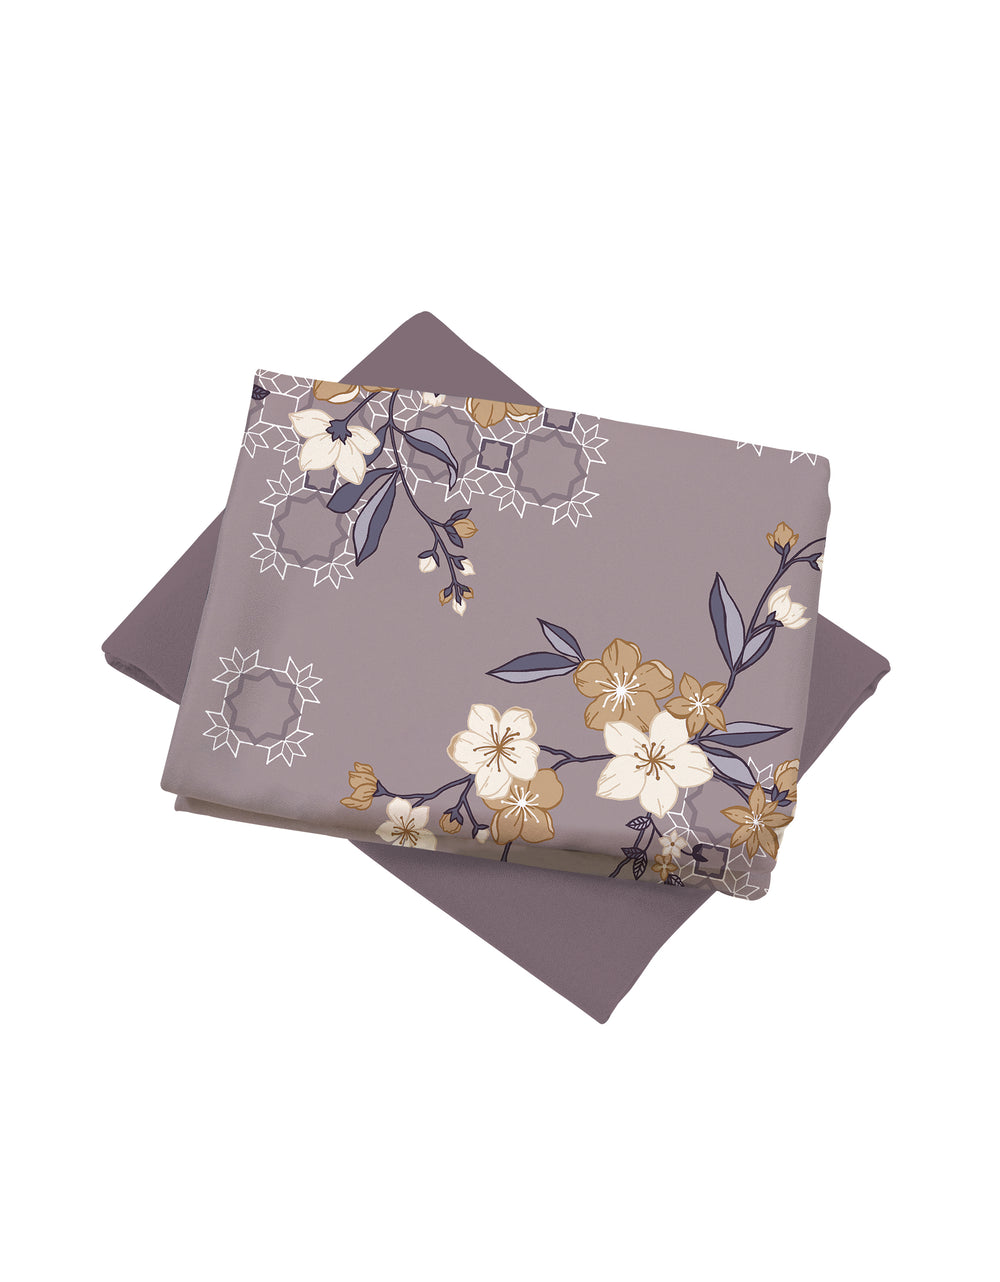 Mix and Match Como Crepe Digital Clarissa (Dusty Purple)